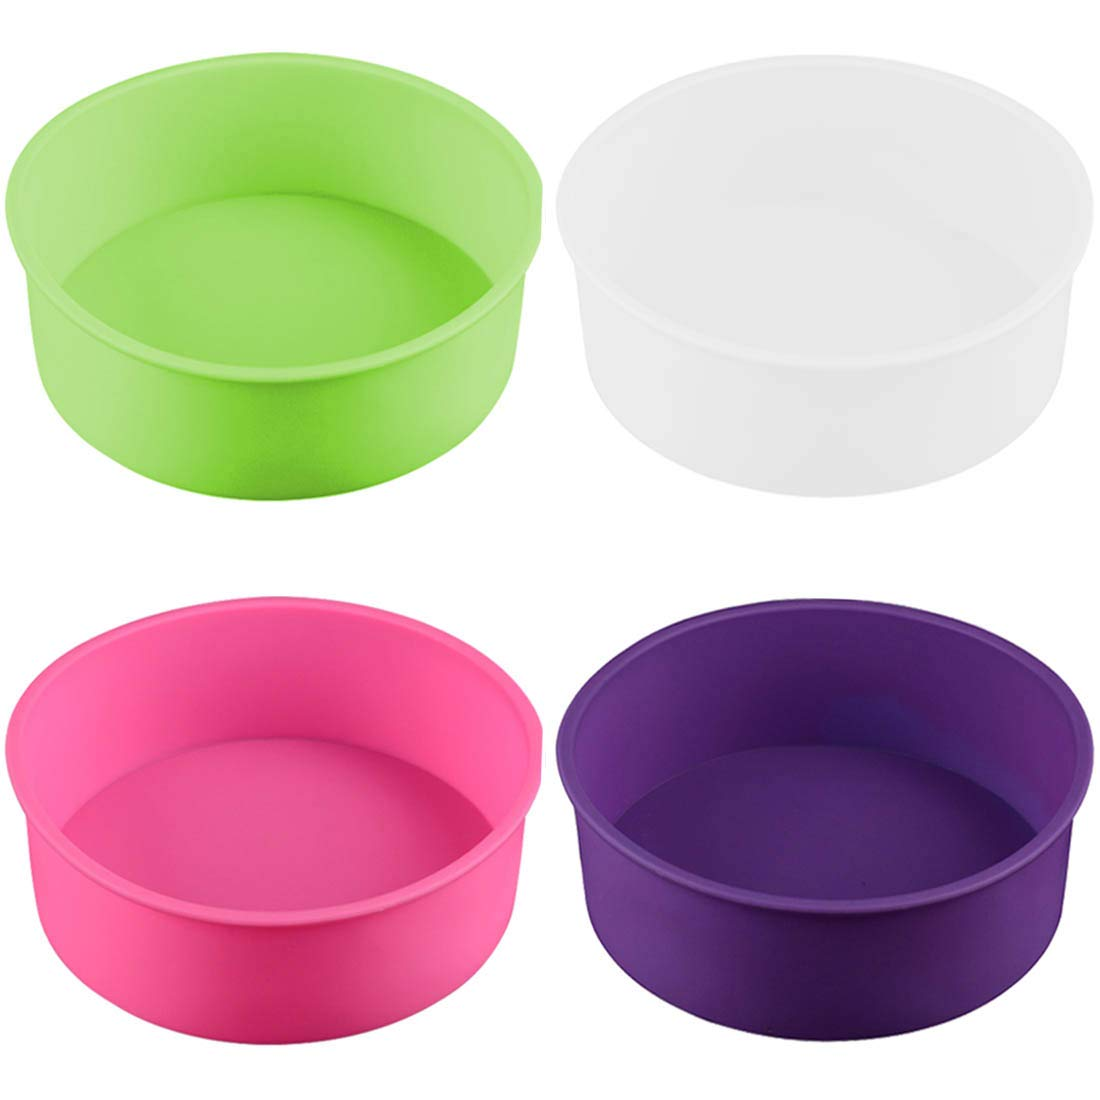 4PCS Round Cake Pan Silicone Baking Molds Cake Mould for Baking 6''(White/red/Purple/Pink) by SIMUR